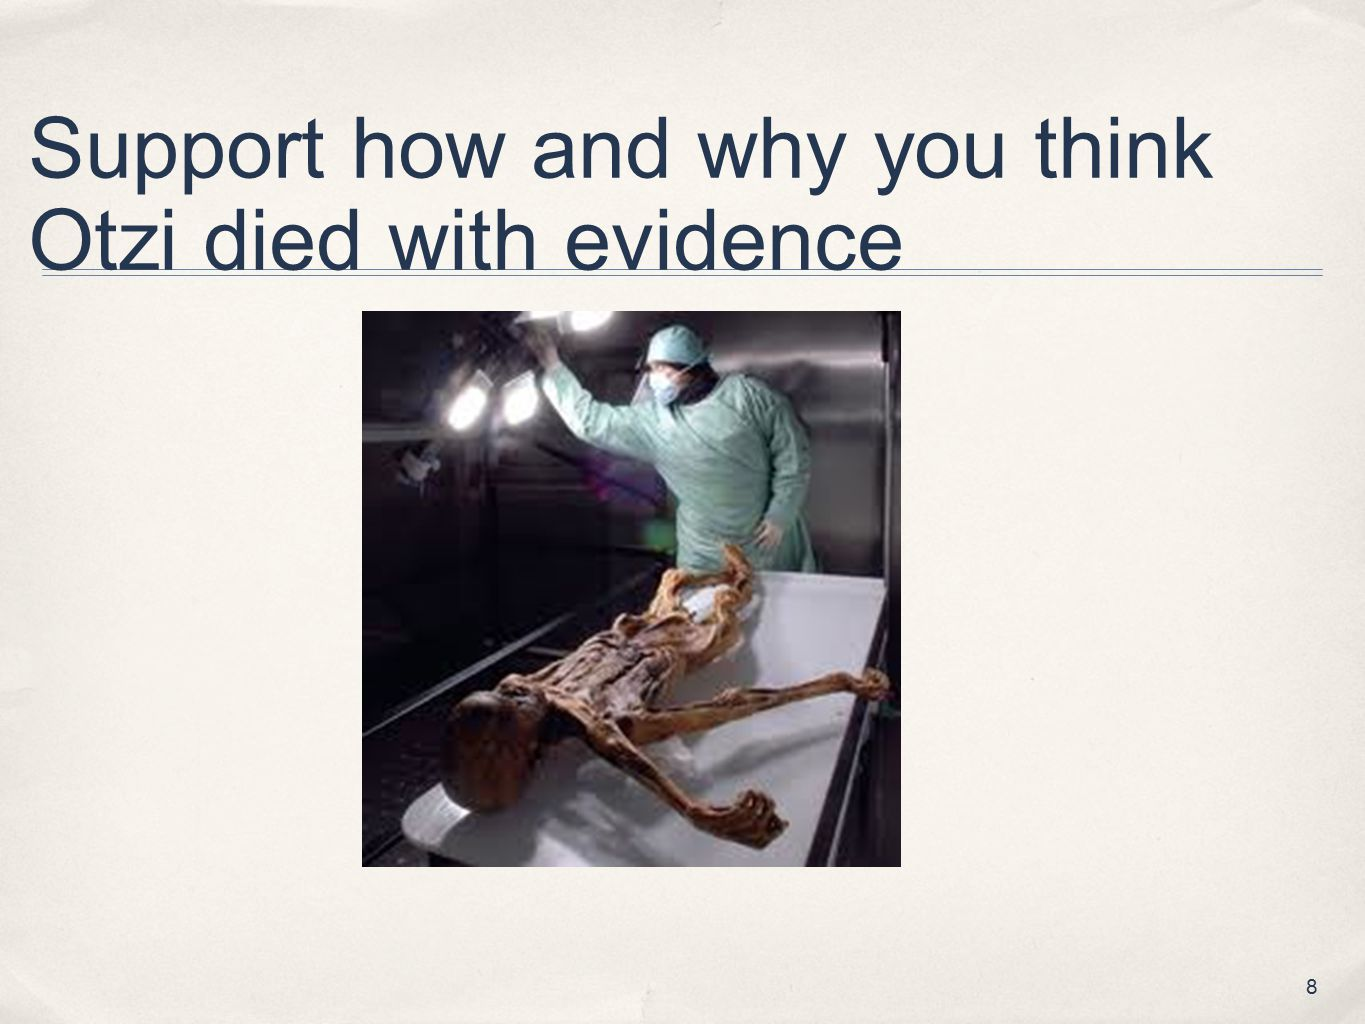 Support how and why you think Otzi died with evidence